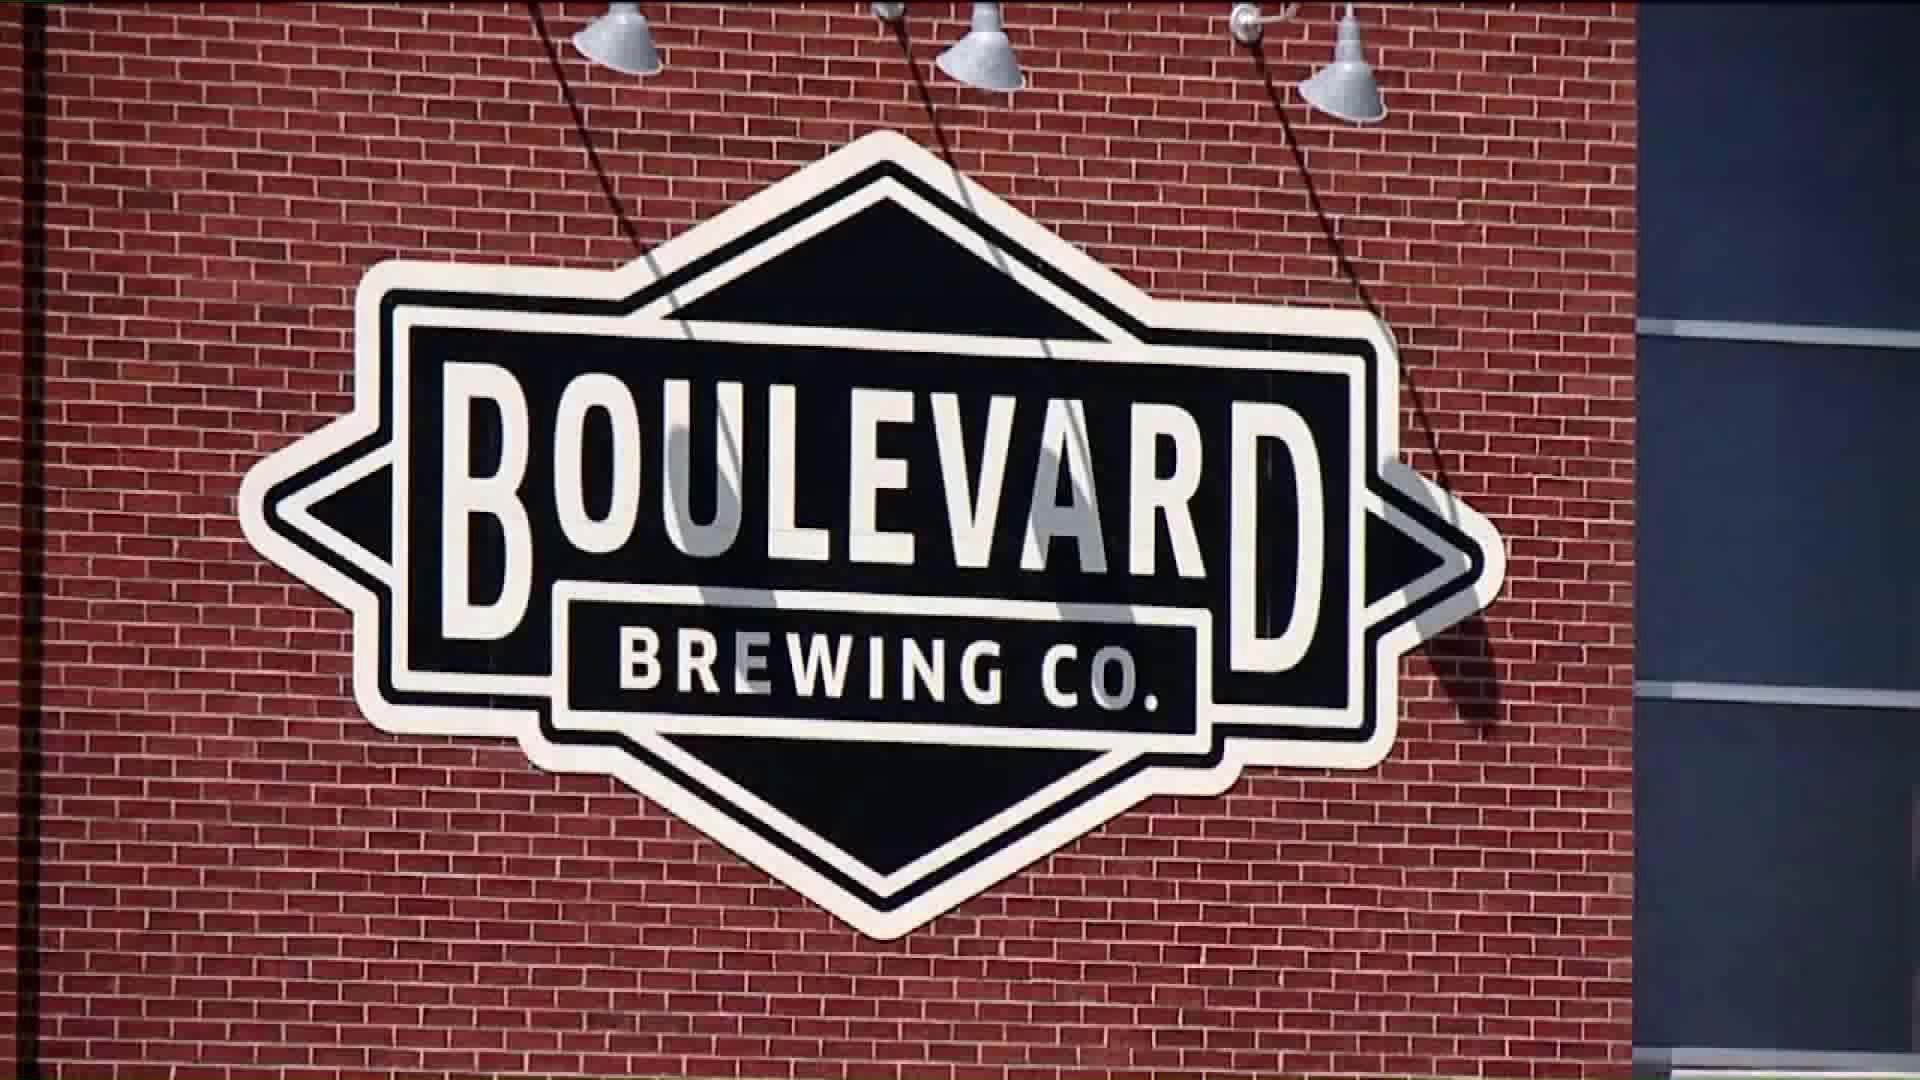 Missouri Residents Upset Brewery Wants to Put Beer Garden Next to Church